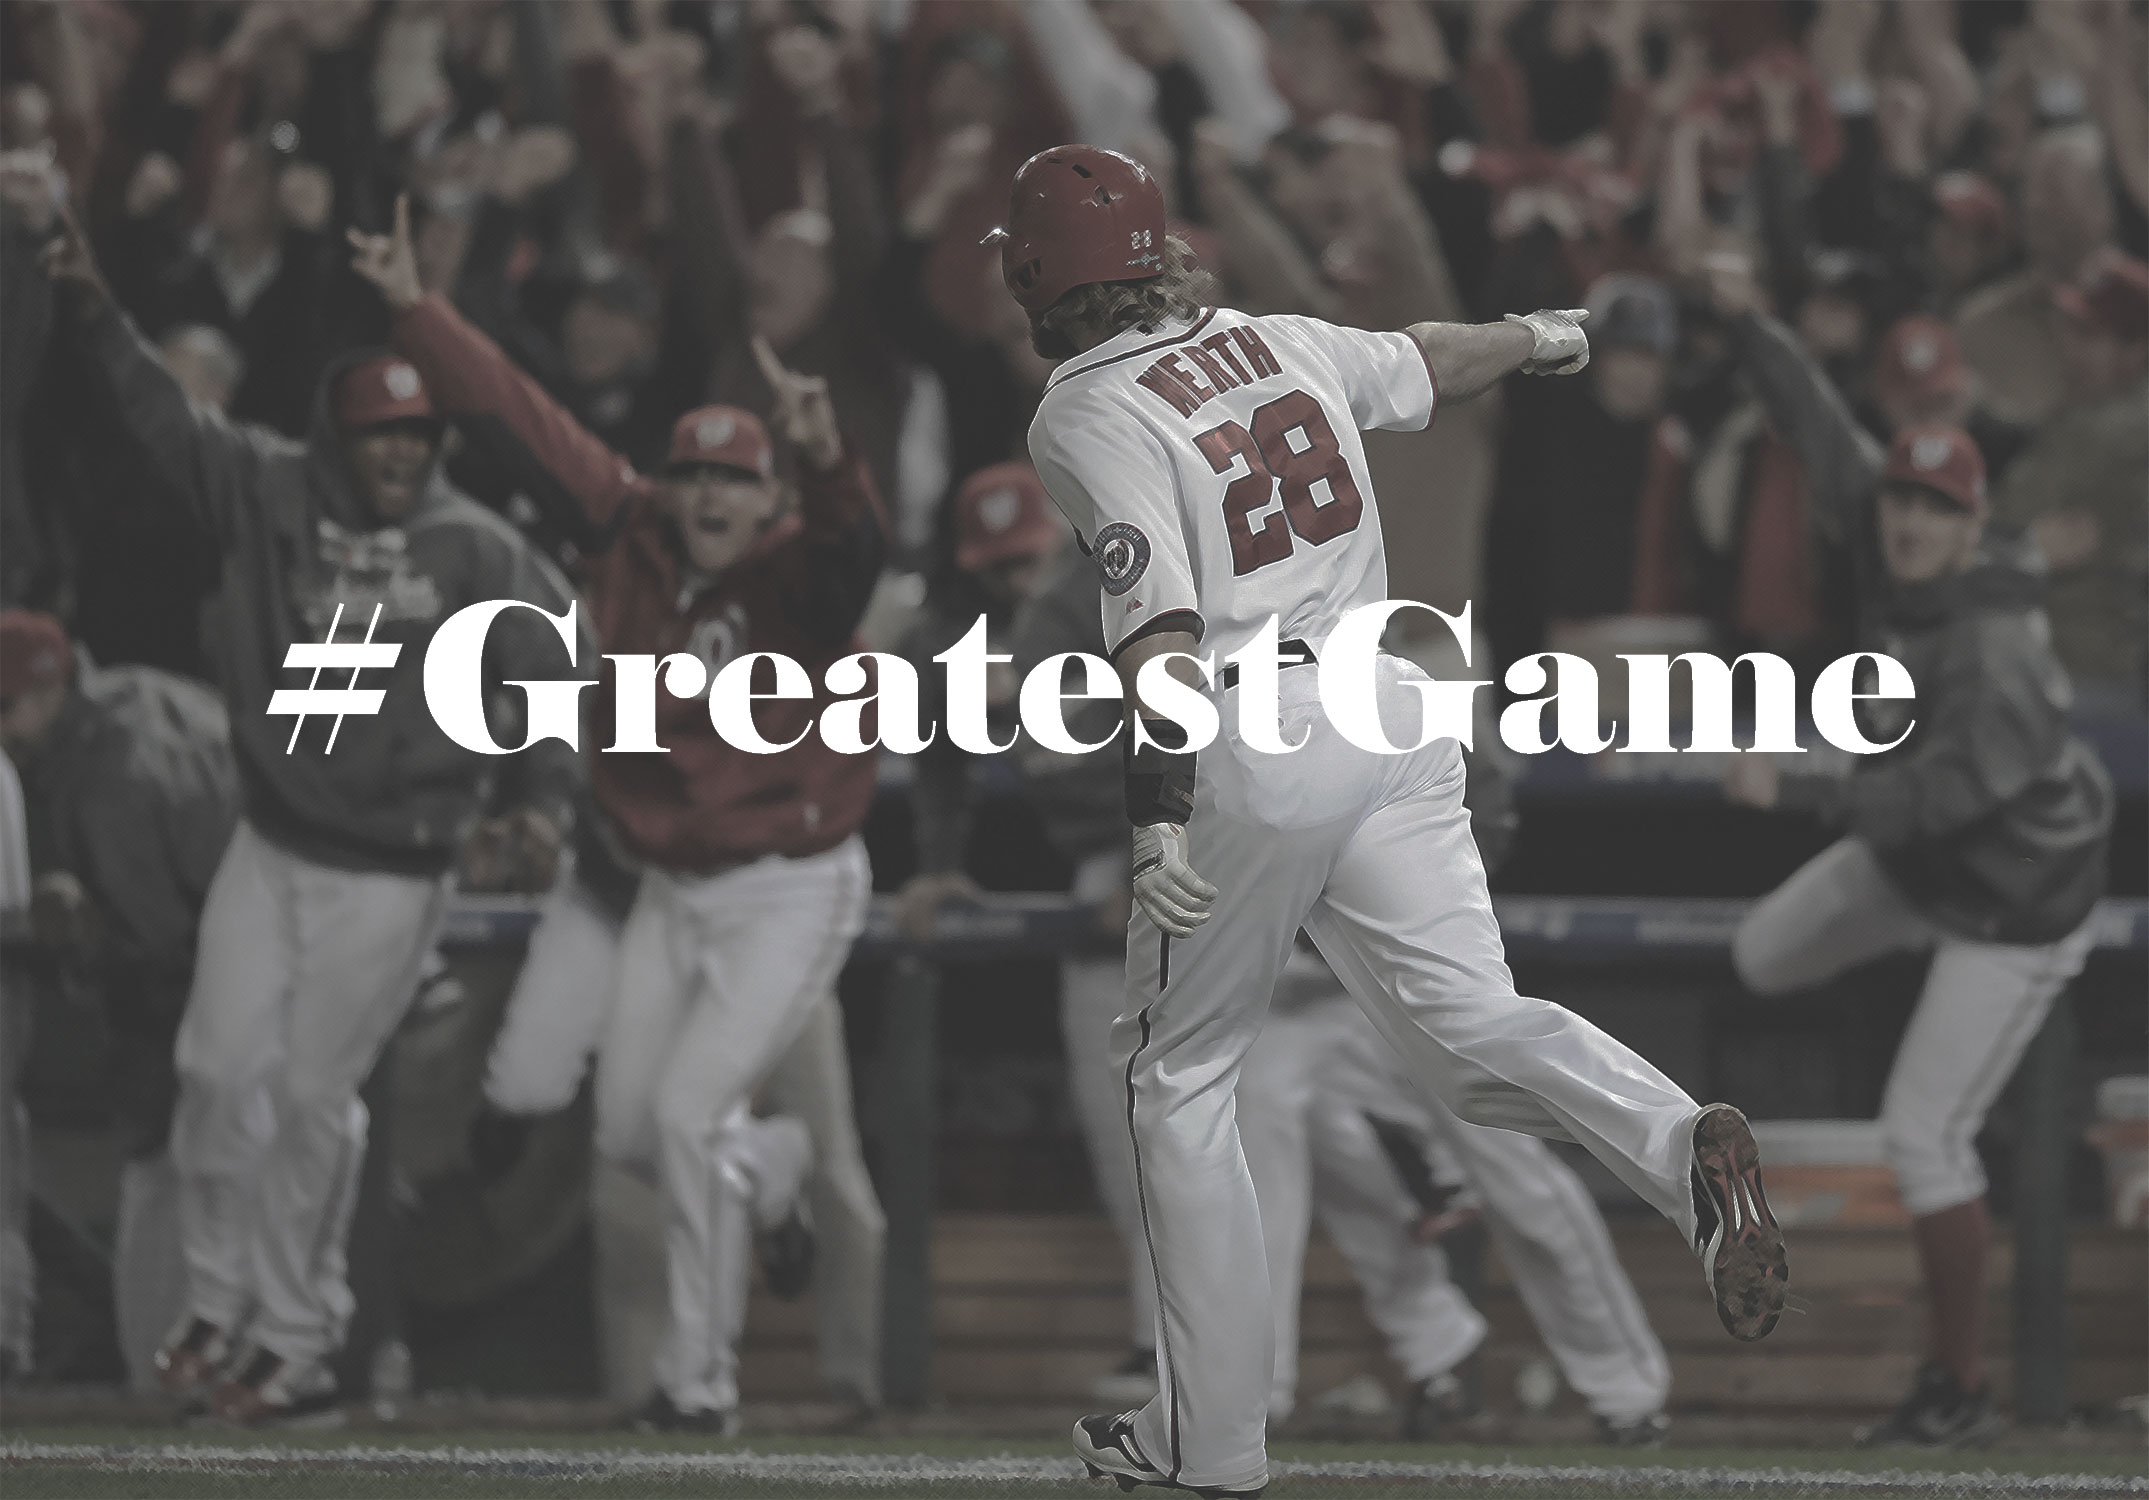 Greatest Game: St. Louis Cardinals vs. Washington Nationals — Oct. 11, 2012